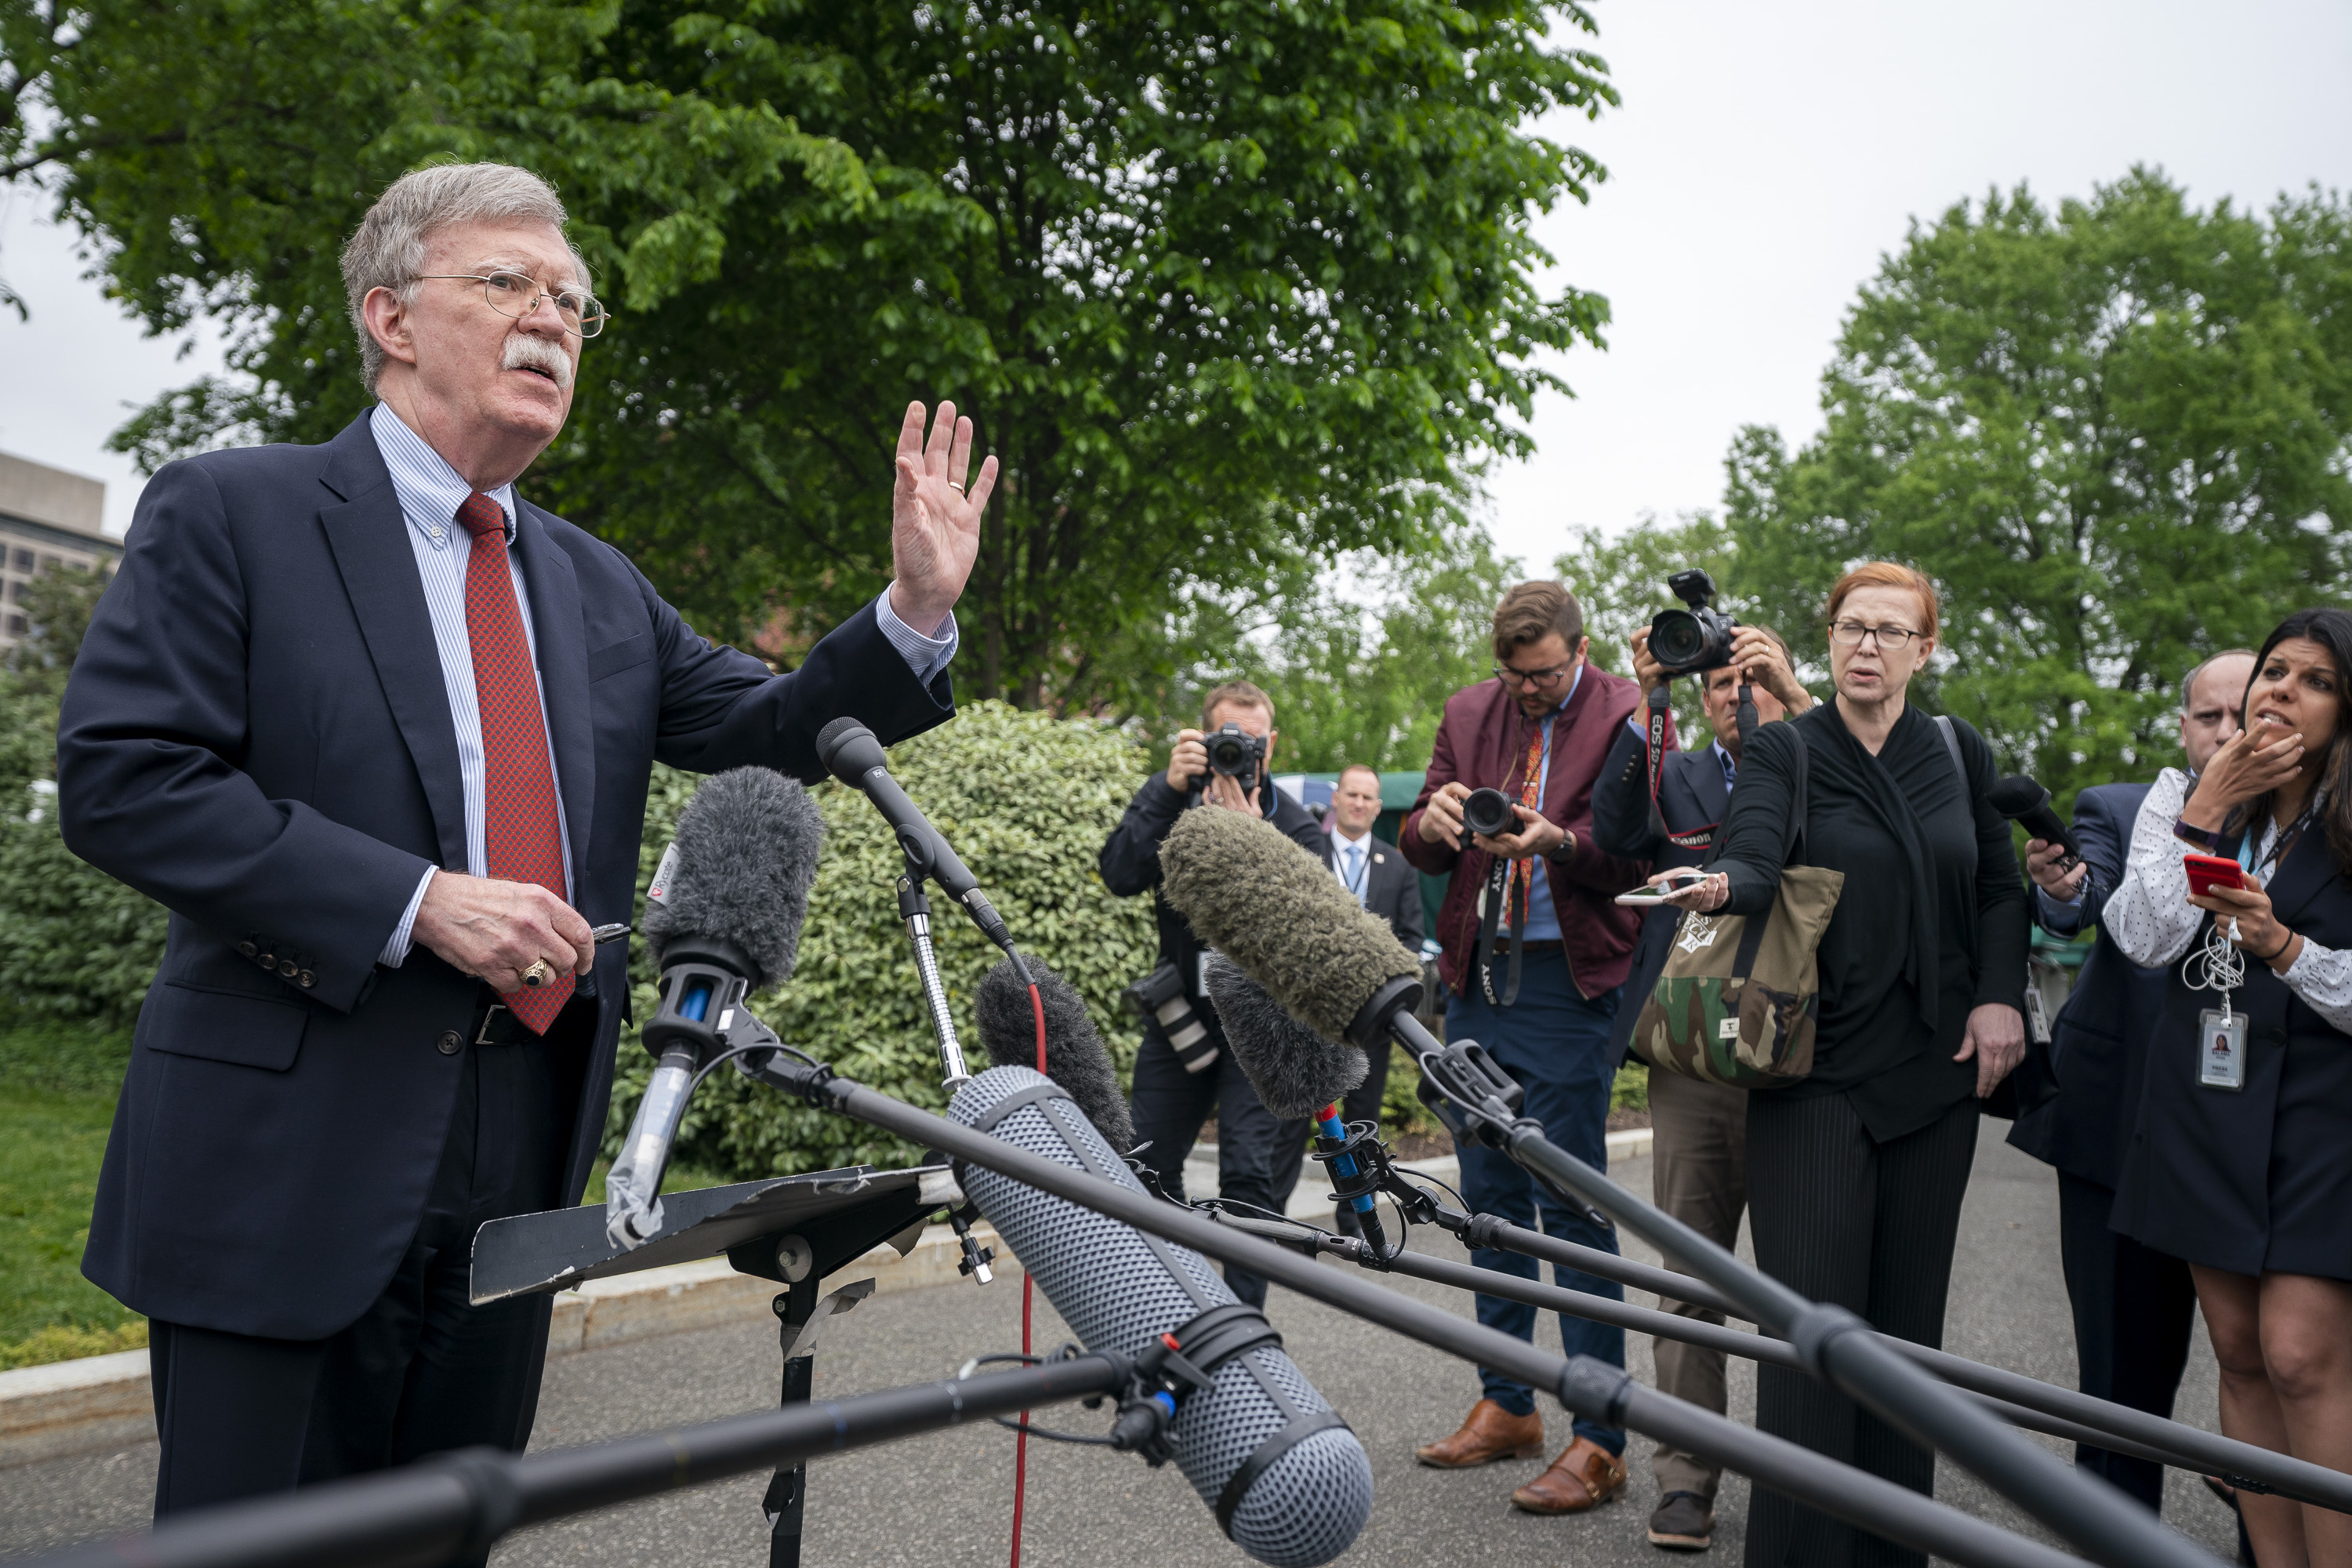 The Last of the White House Neocons